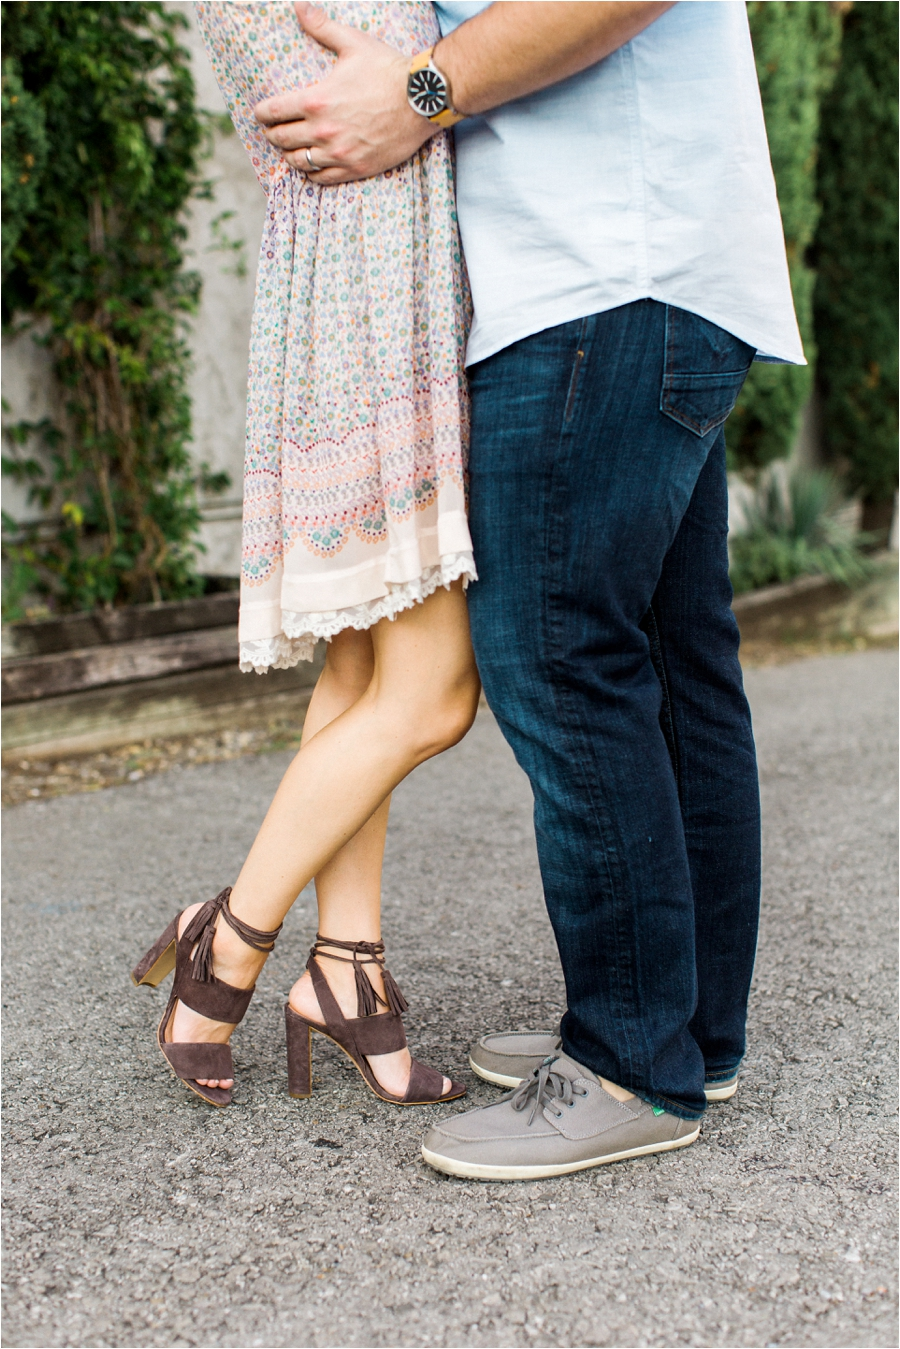 nashvile-outdoor-lifestyle-anniversary-session-by-charlottesville-film-photographer-amy-nicole-photography_0288